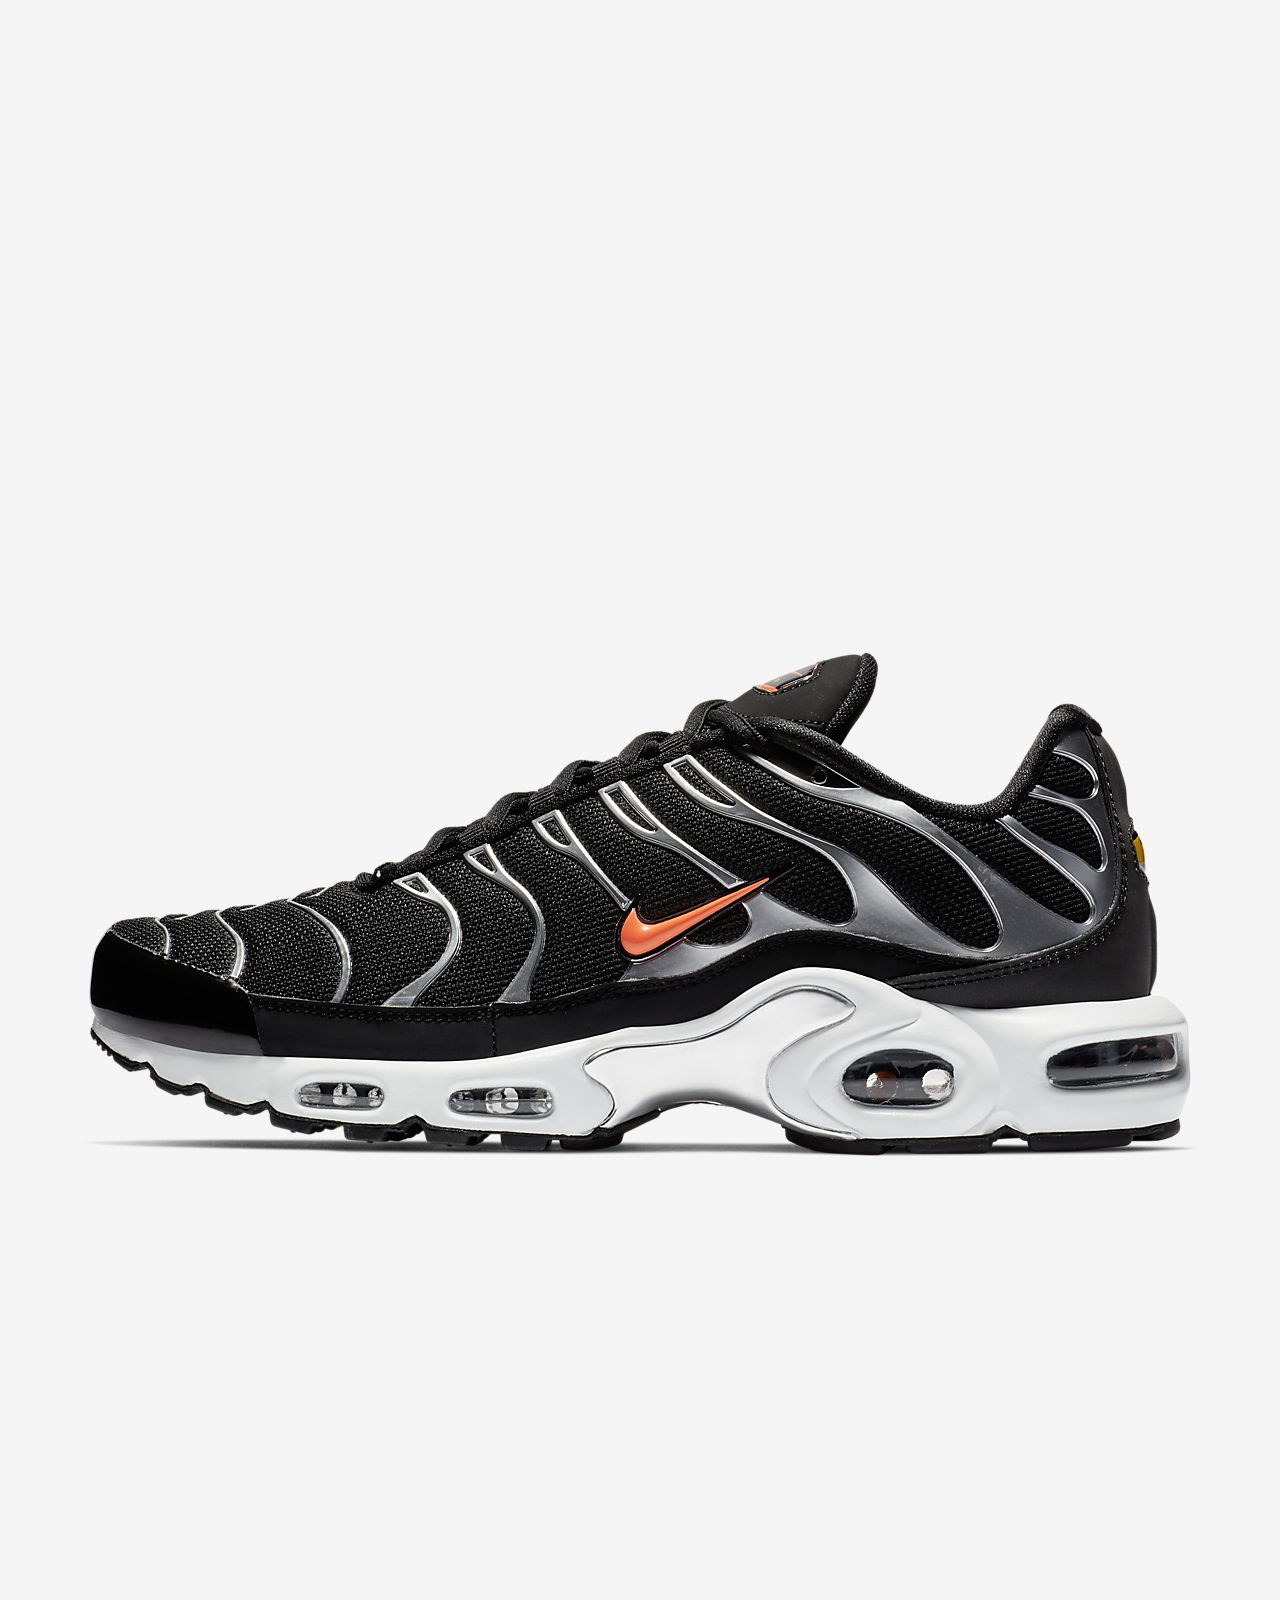 wholesale dealer 6d640 10ed6 ... Calzado para hombre Nike Air Max Plus TN SE